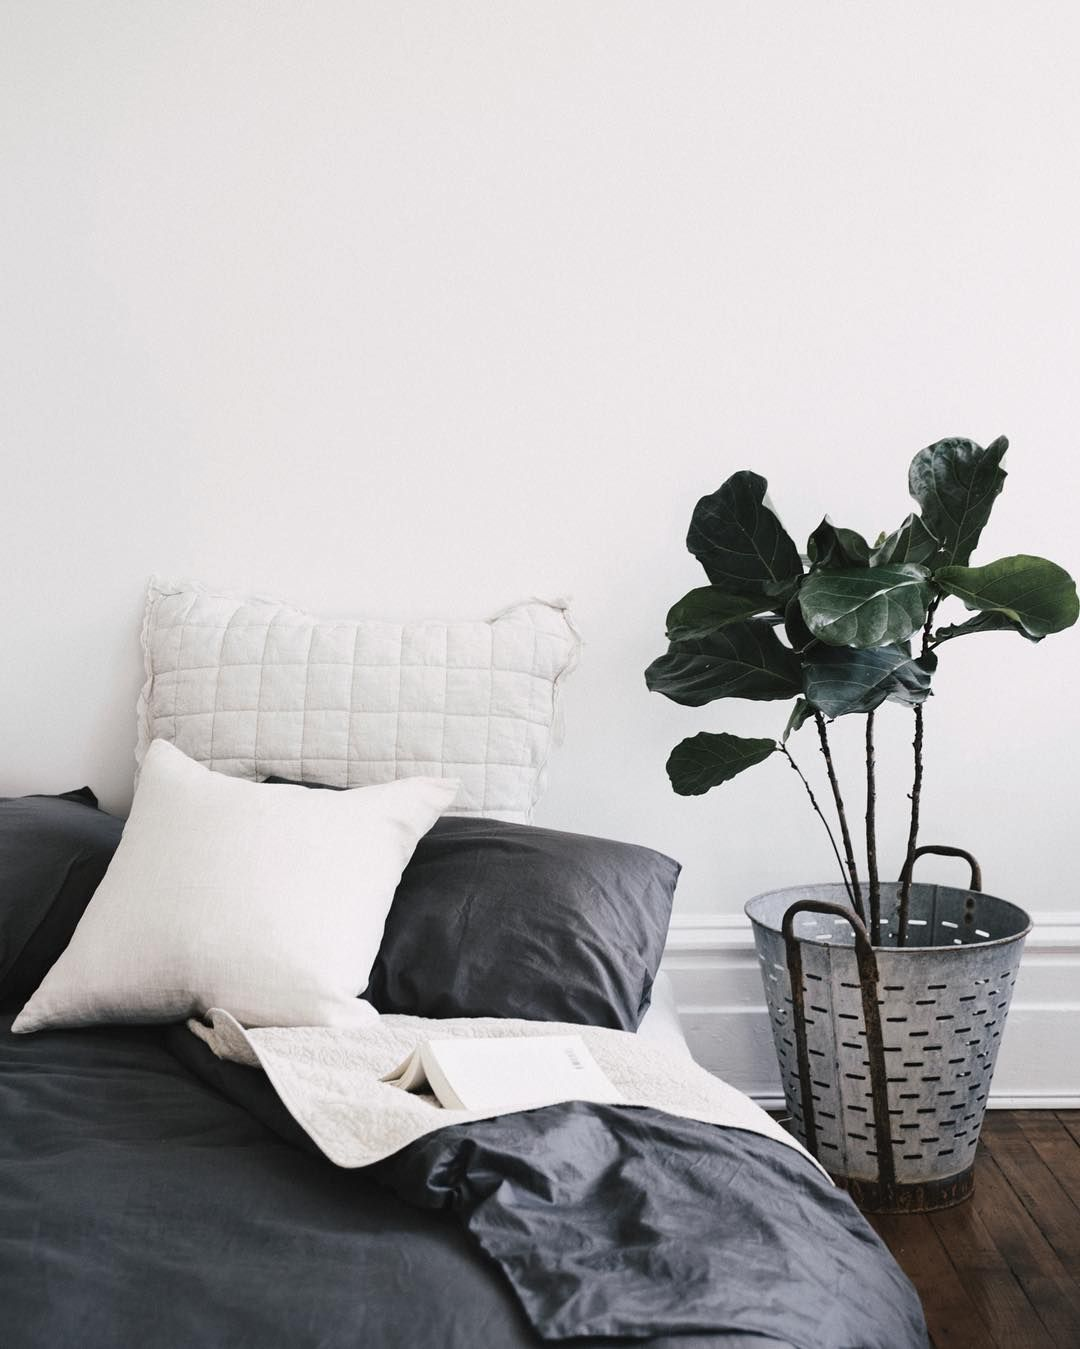 Figgies instead of a bed side table always does the job 🌿 #theapartment